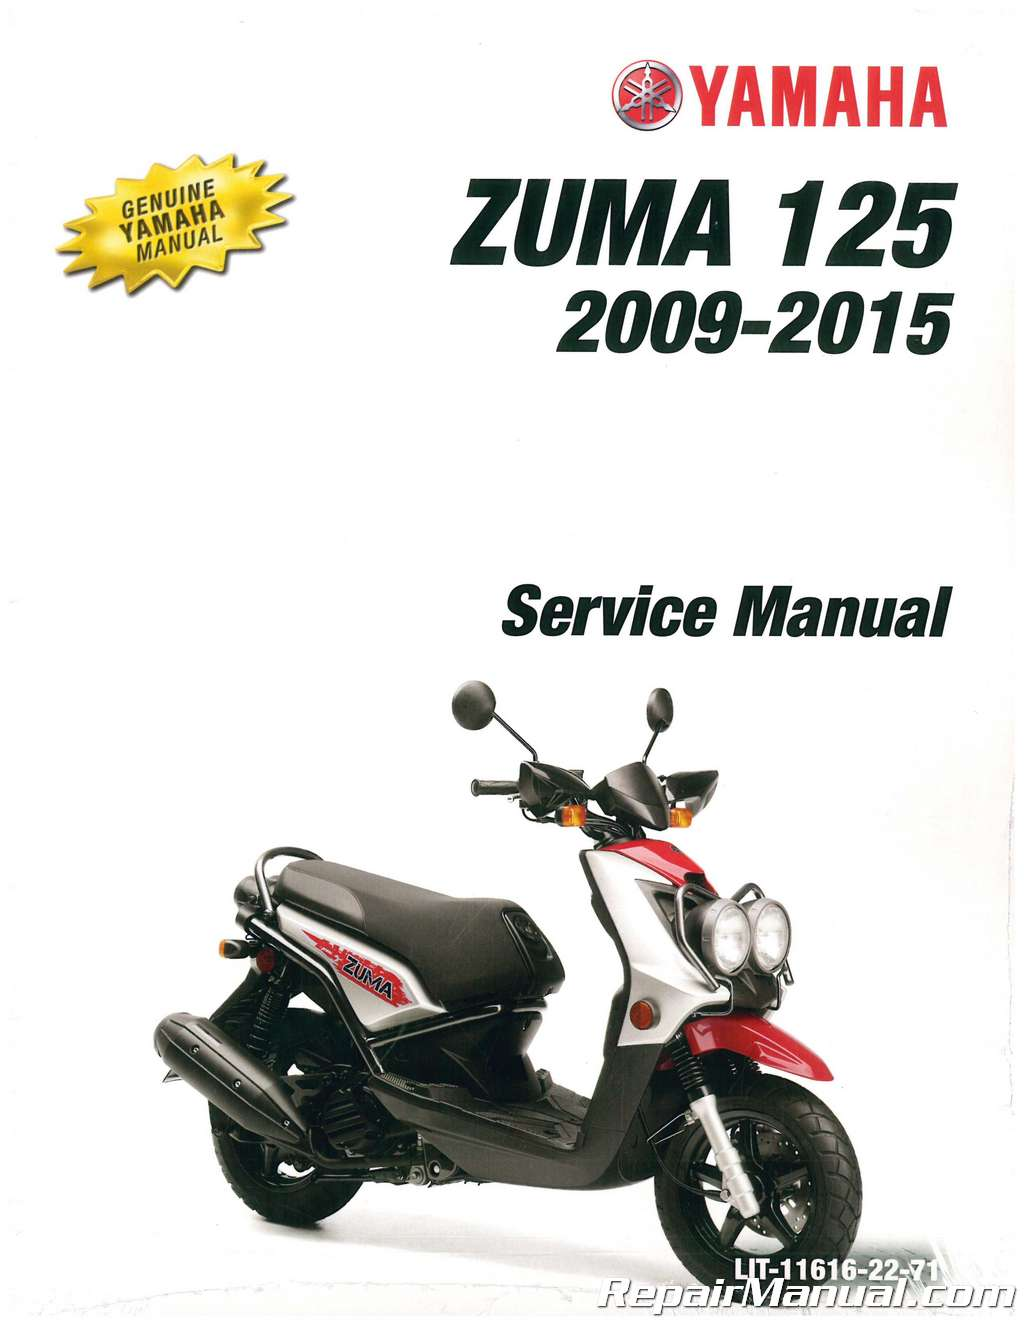 hight resolution of 2009 2016 yamaha yw125 zuma 125 scooter service manual rh repairmanual com yamaha zuma 50cc scooter yamaha zuma 125 fuse box location